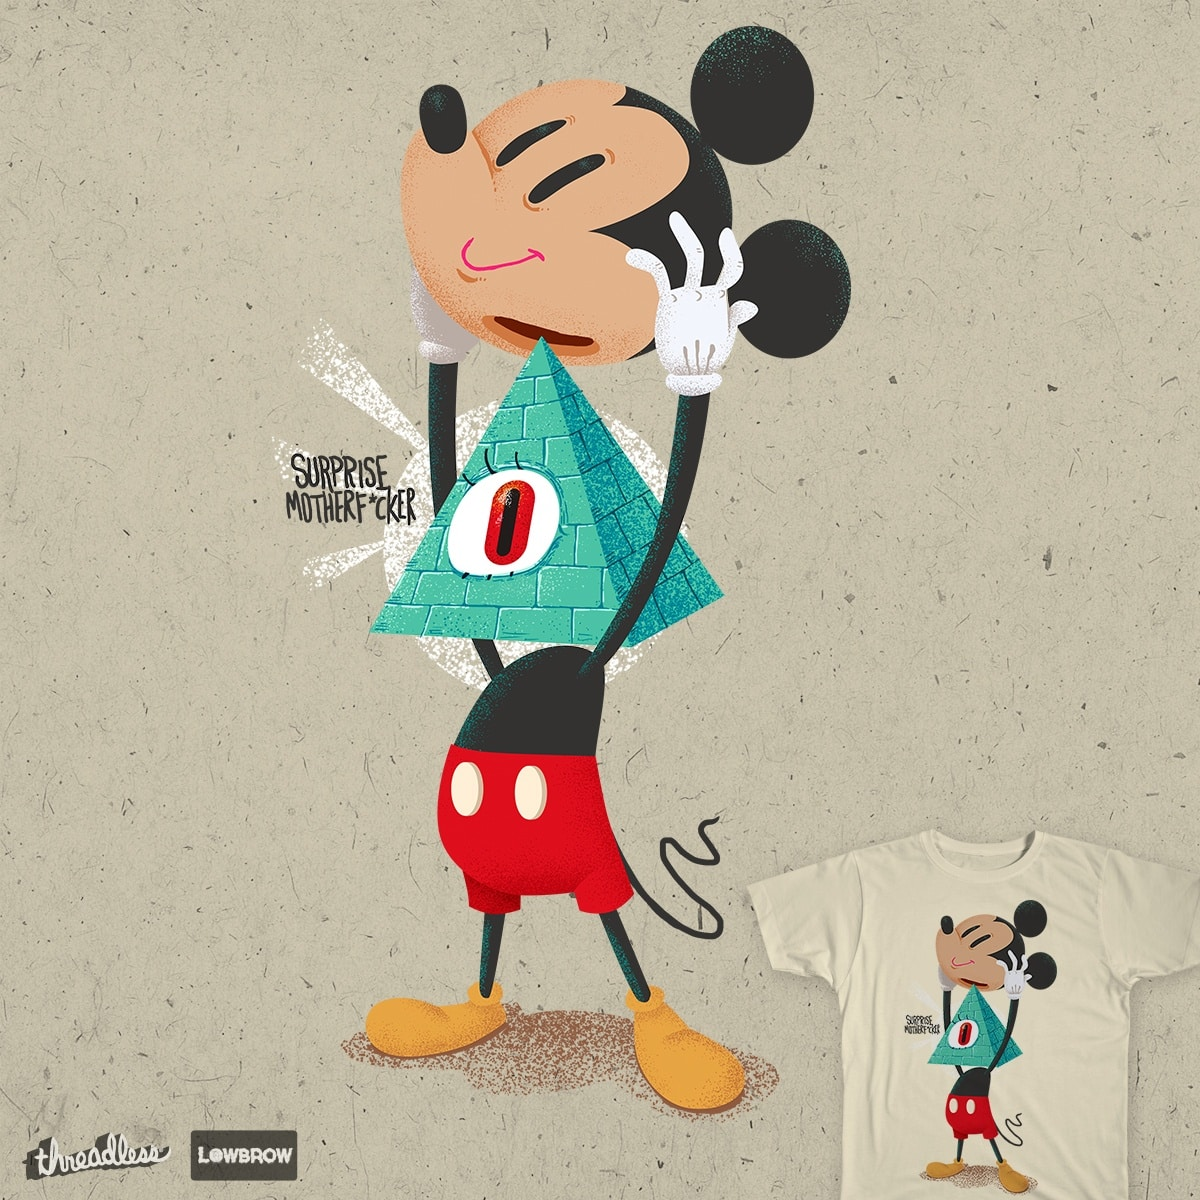 Surprise!!! by tales83 on Threadless